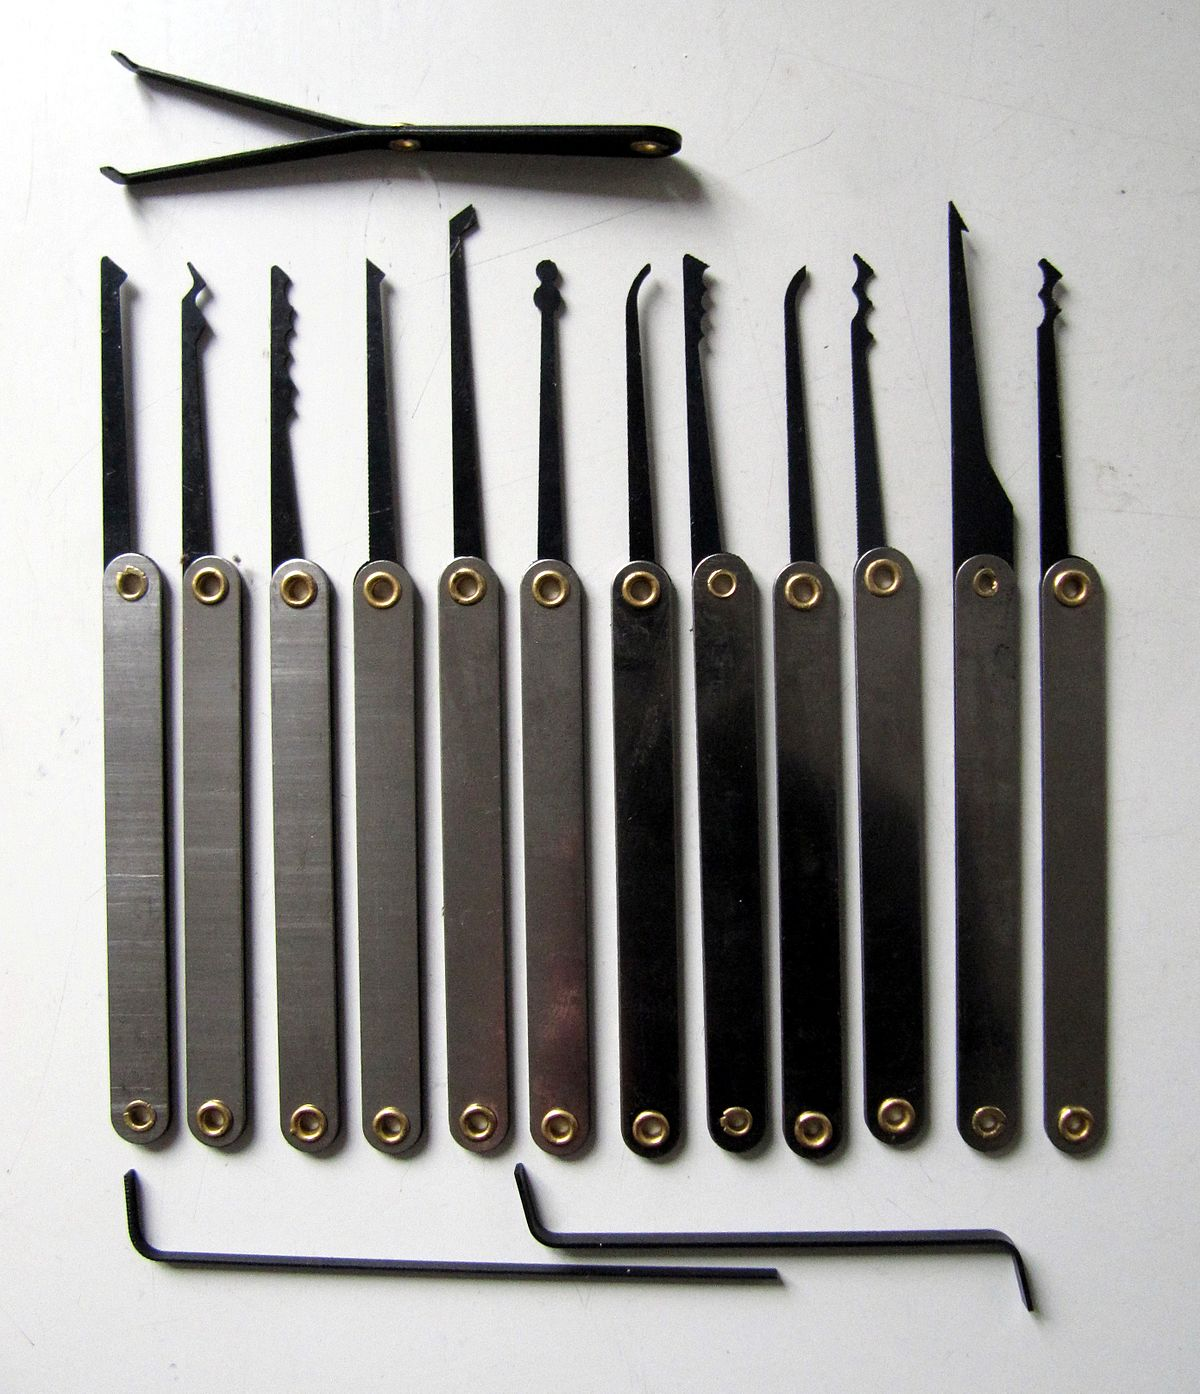 Lock Picking Wikipedia